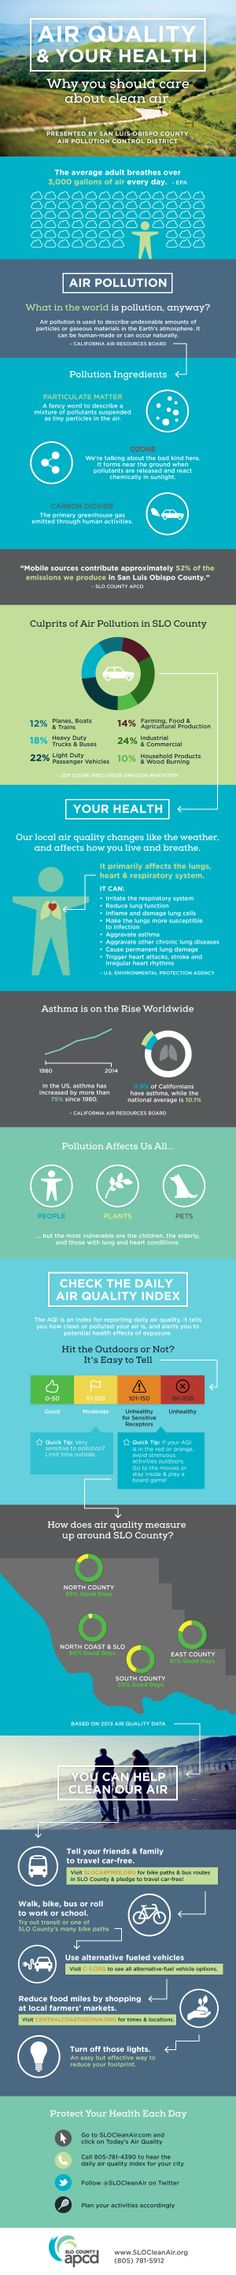 281 best Health Effects of Air Pollution images on Pinterest Air - child acting resume